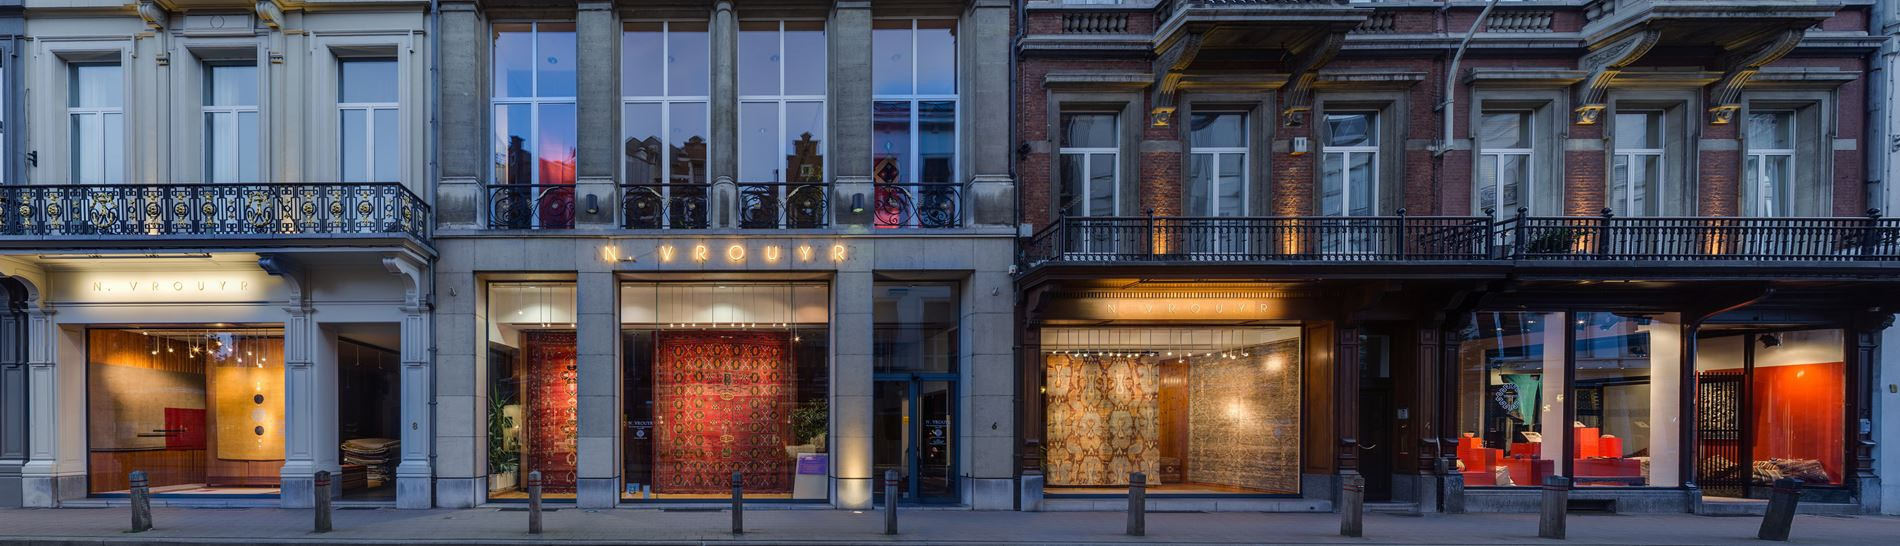 More than a century of rugs and trust